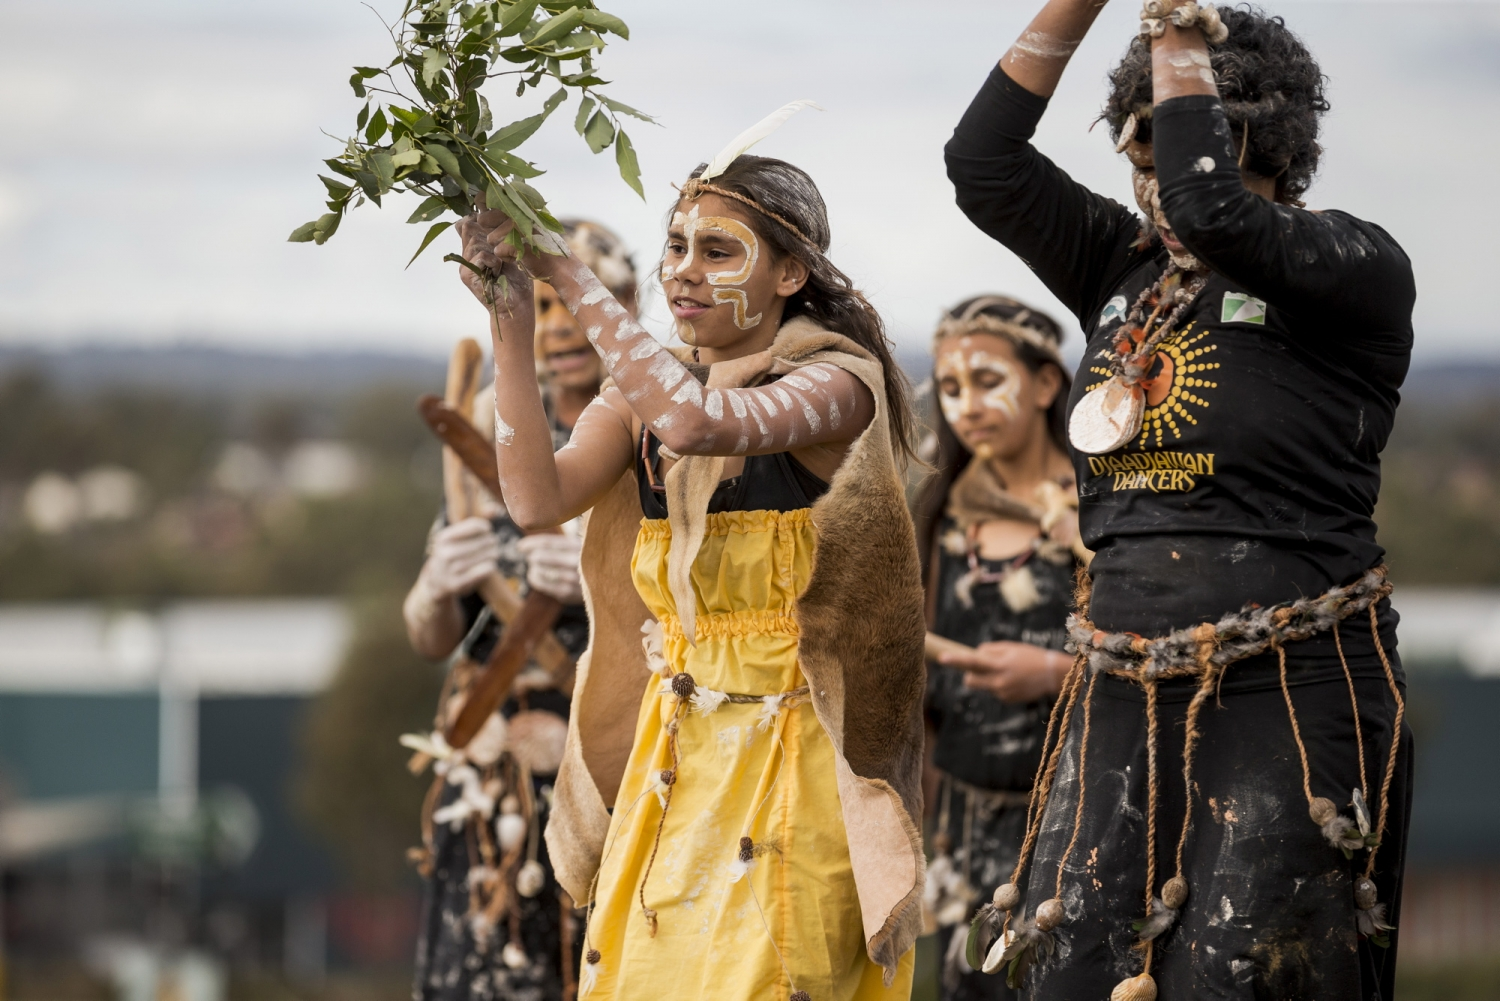 Indigenous dancers with leaves, central figure in yellow dress.